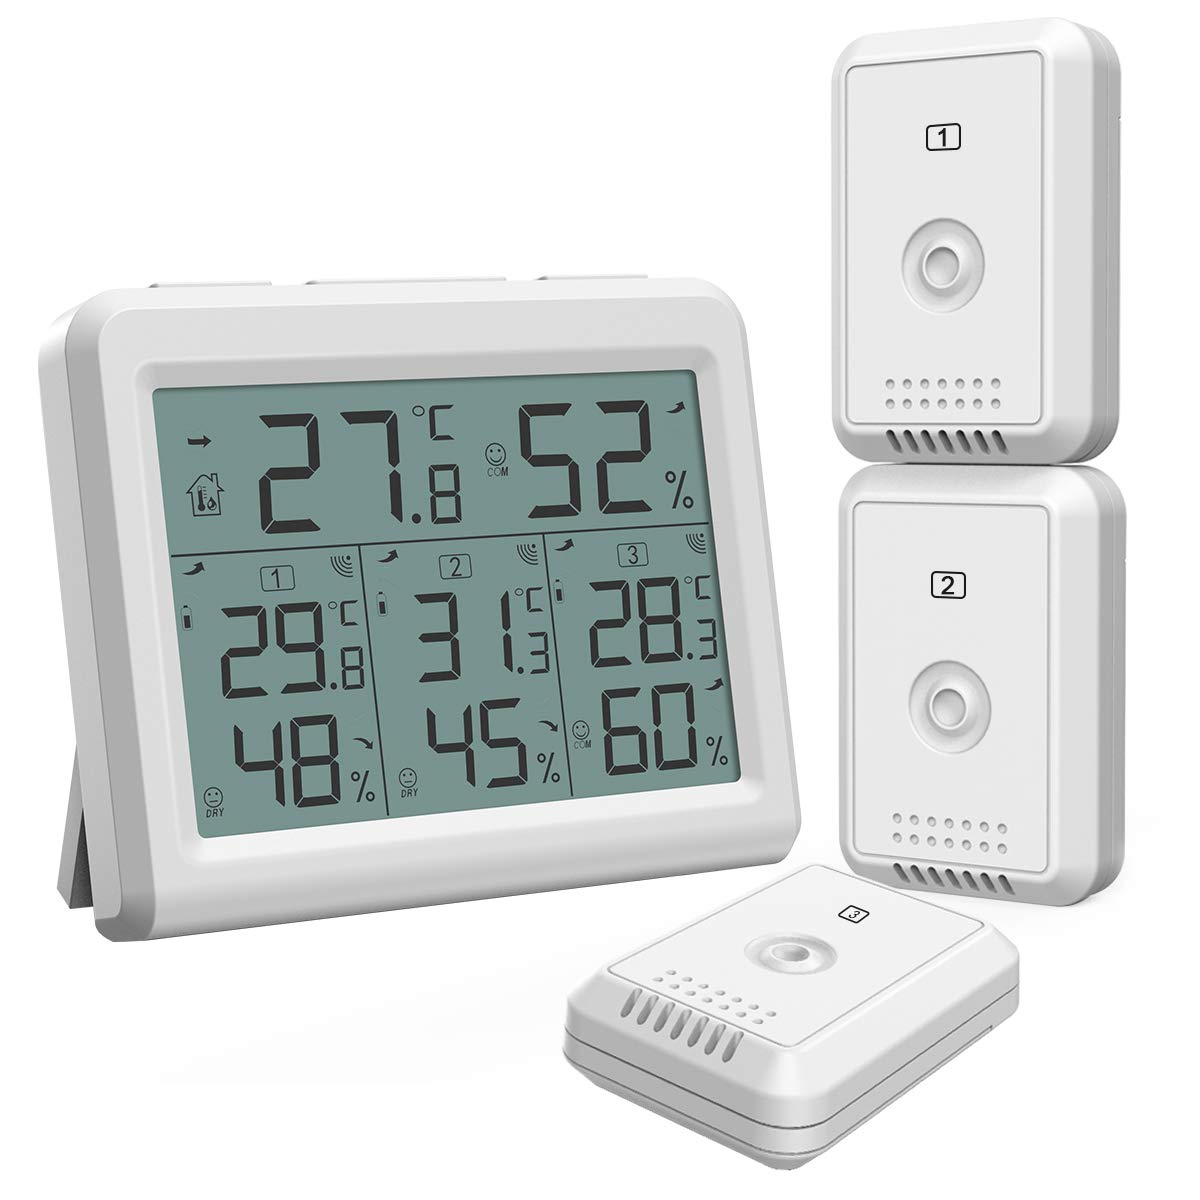 YFYIQI Digital Thermometer Hygrometer Indoor Outdoor Thermometer Humidity Monitor Temperature Humidity Tester Gauge Meter Time Clock HTC-1 with MAx Min Value for Home Office Greenhouse